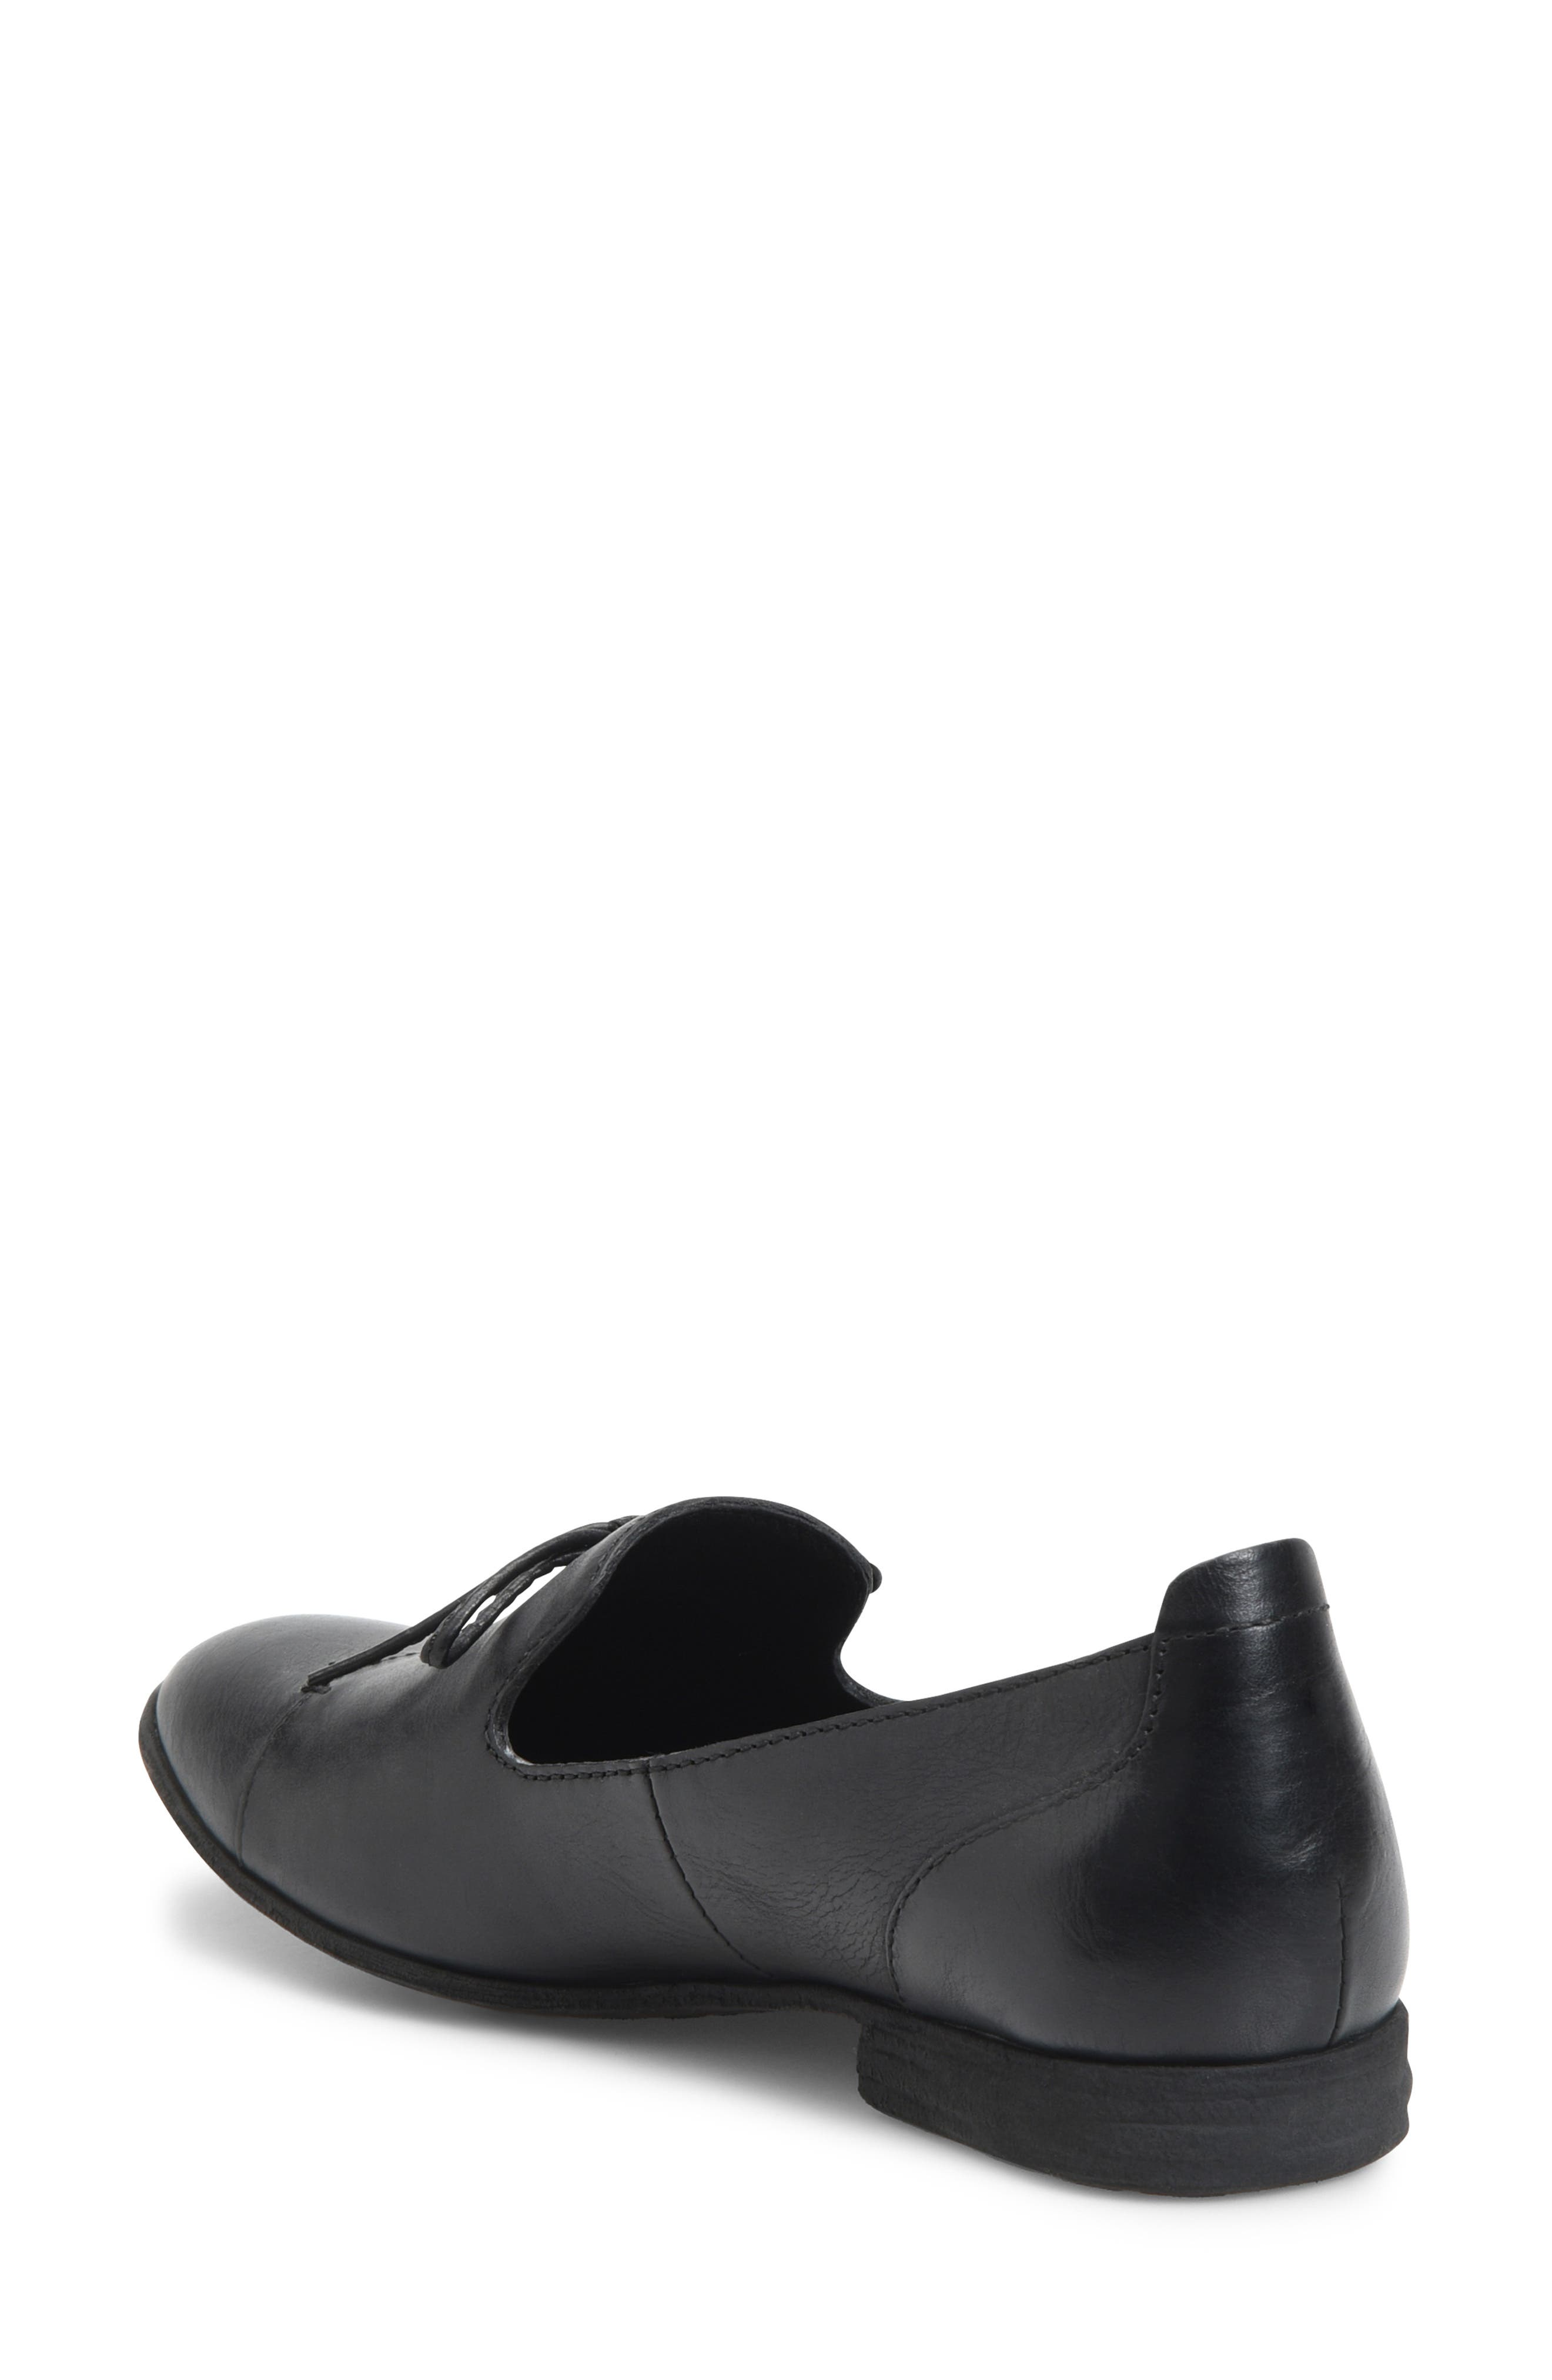 Gallatin Loafer,                             Alternate thumbnail 2, color,                             BLACK LEATHER